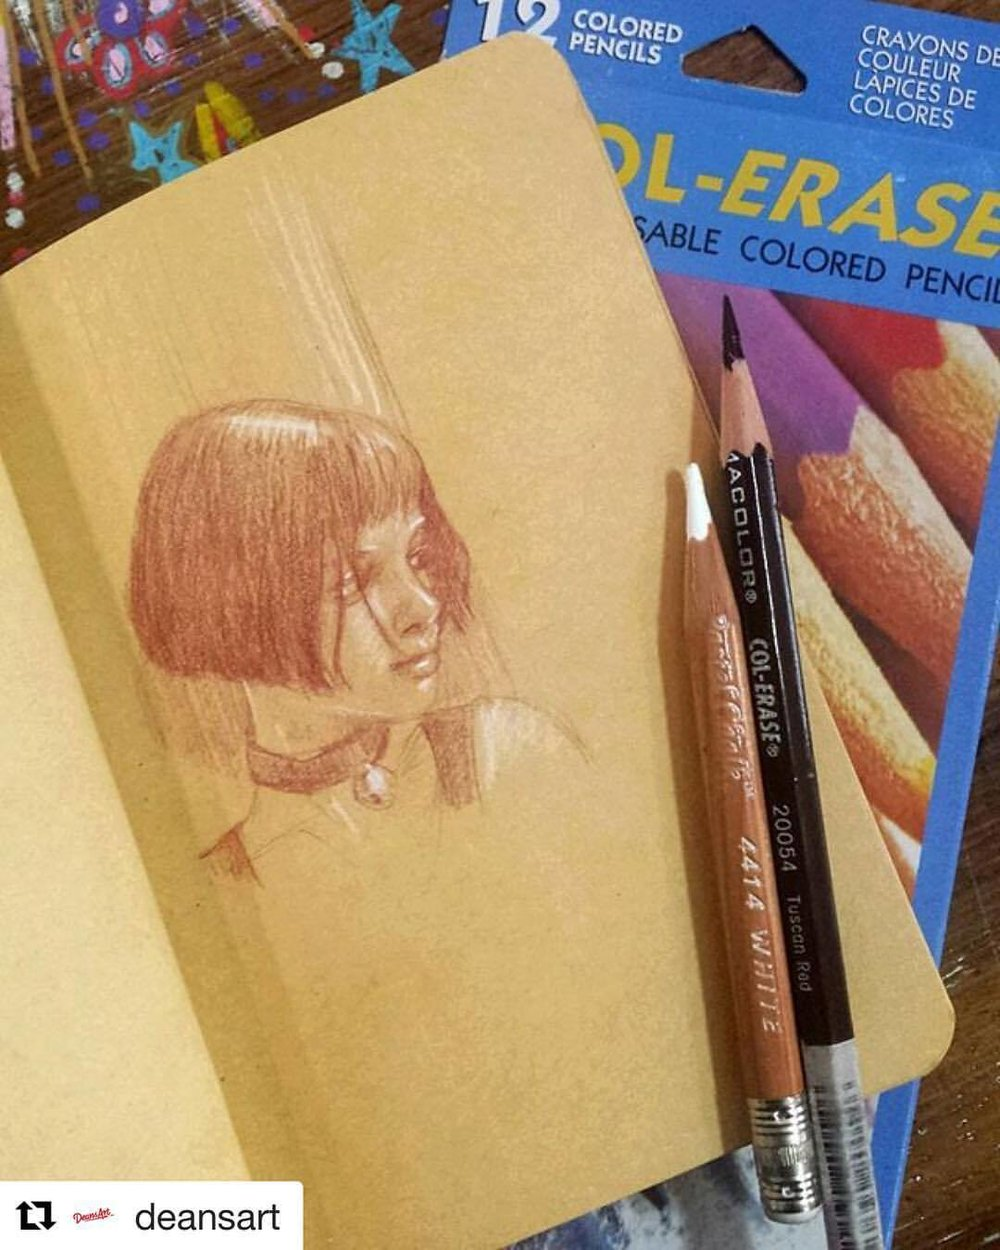 My drawing featured on my works Instagram page today ☺  ・・・  Look what you can do with a #prismacolor #colerasepencil and a #generalswhitepastel #pencil both of which you can buy from #southmelbourne #deansart we also sell the #kraftpaper visual diaries ☺ #instaart #instaartist #artproducts #melbourneartist #artlovers #sketchbook by @belindaillustrates